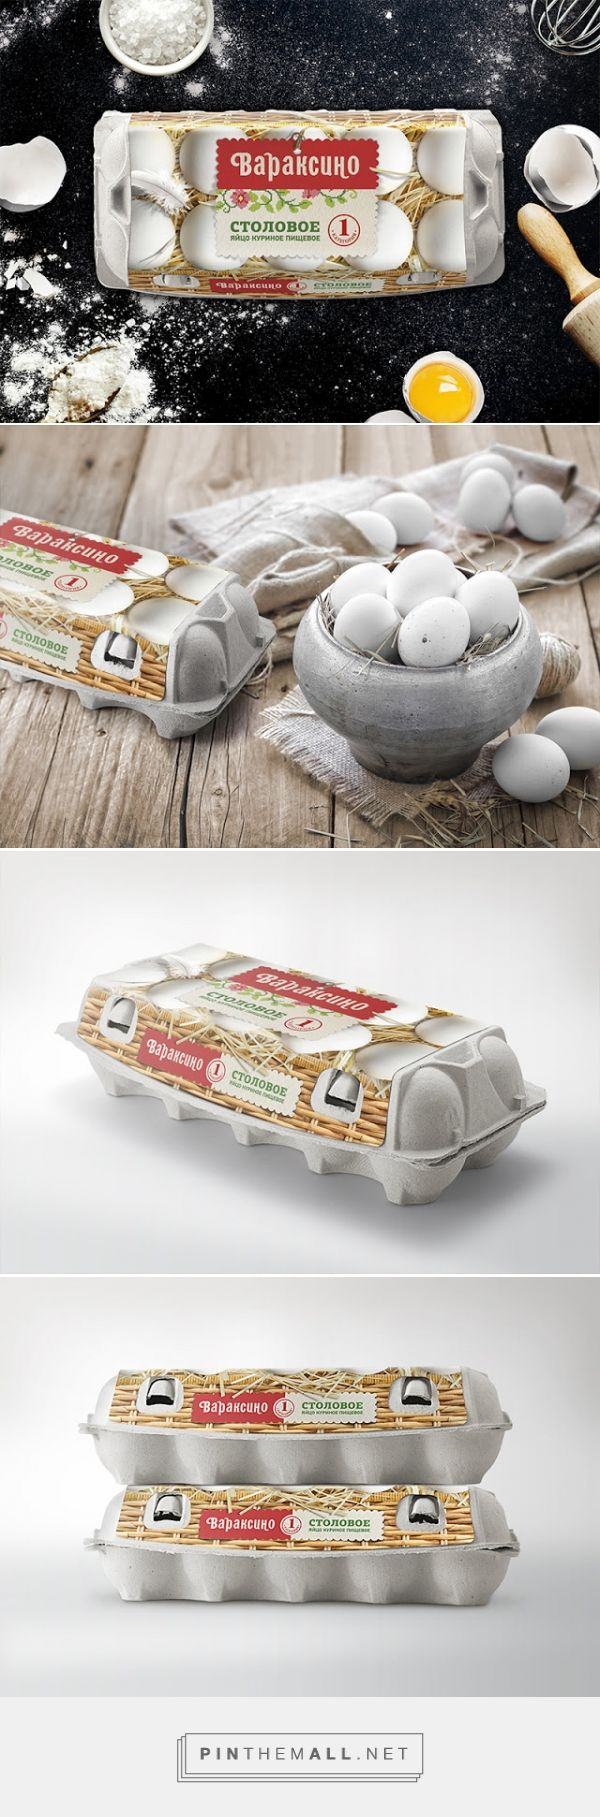 Varaksino EGG  - Packaging of the World - Creative Package Design Gallery - http://www.packagingoftheworld.com/2016/01/varaksino.html